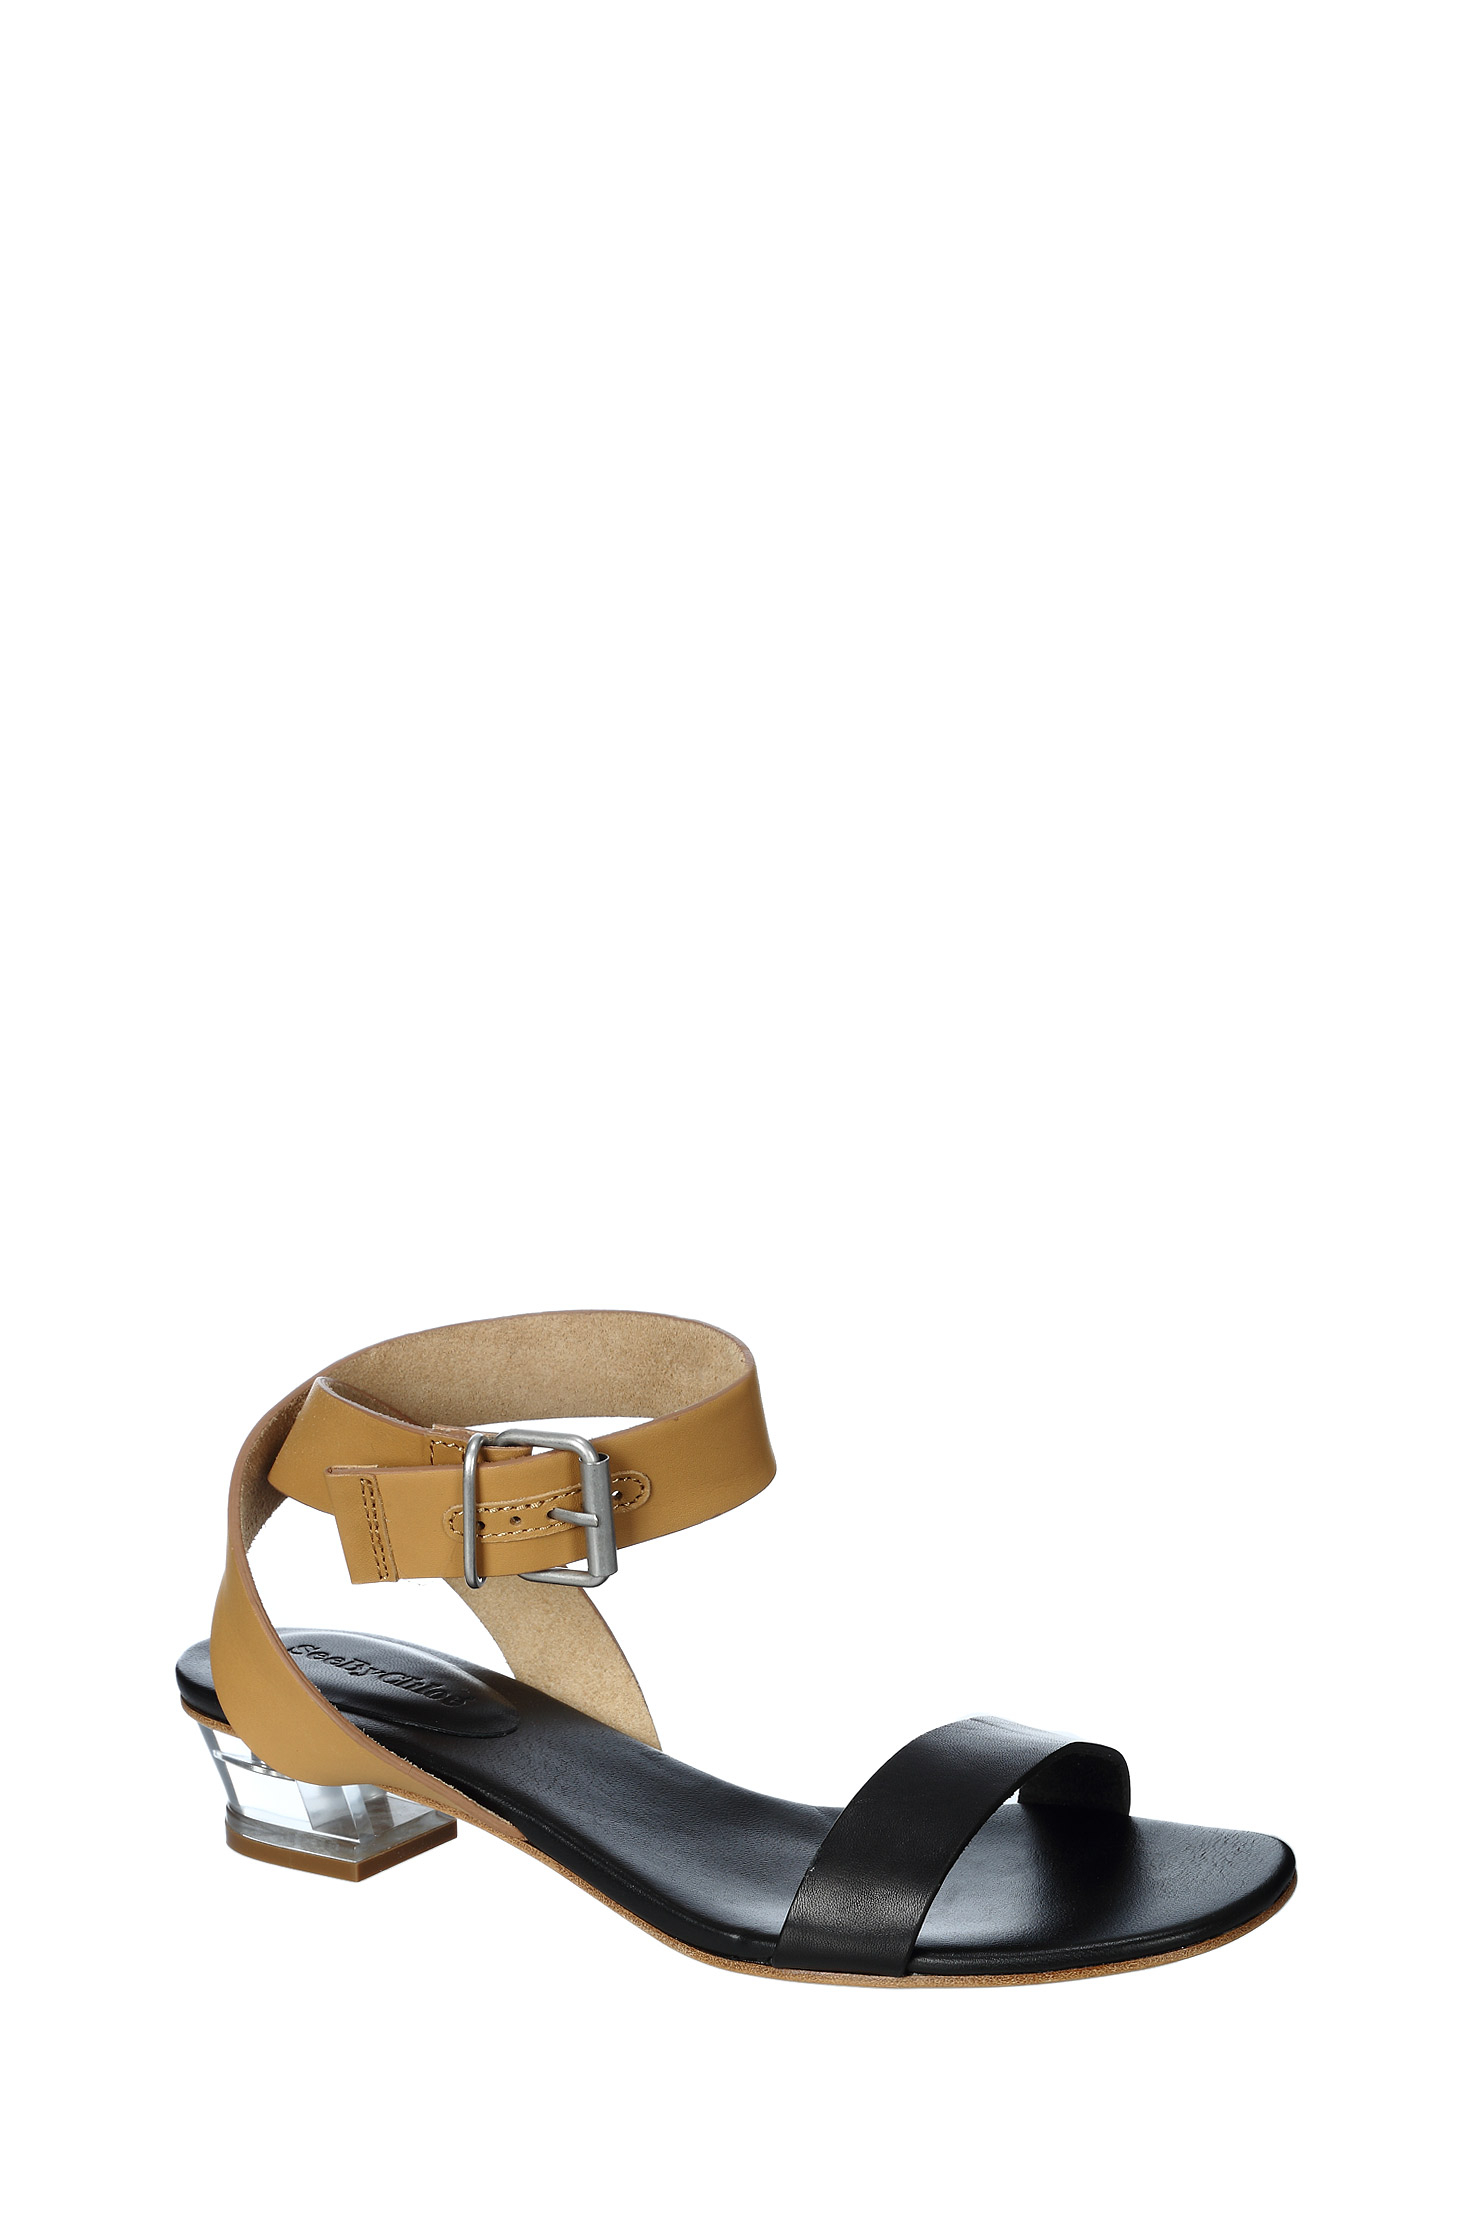 see by chlo sandals shoes in khaki black lyst. Black Bedroom Furniture Sets. Home Design Ideas